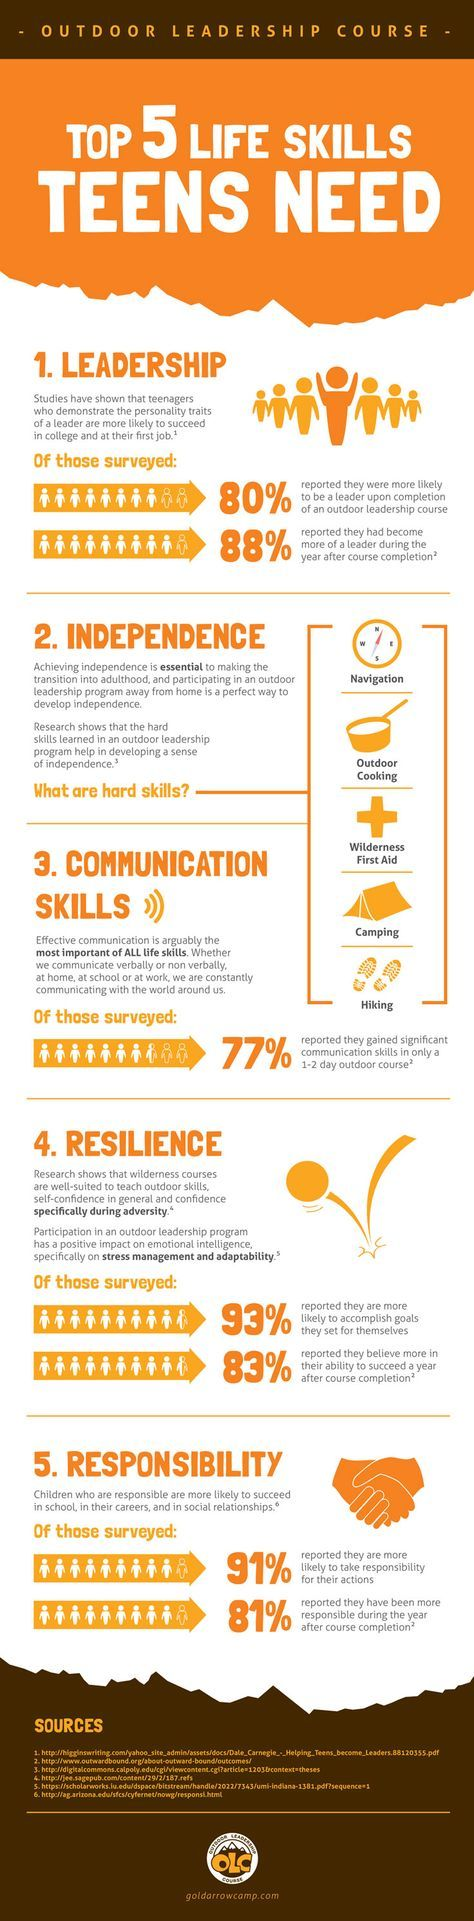 Top 5 Life Skills Teens Need - why an outdoor leadership course is perfect for your teen!